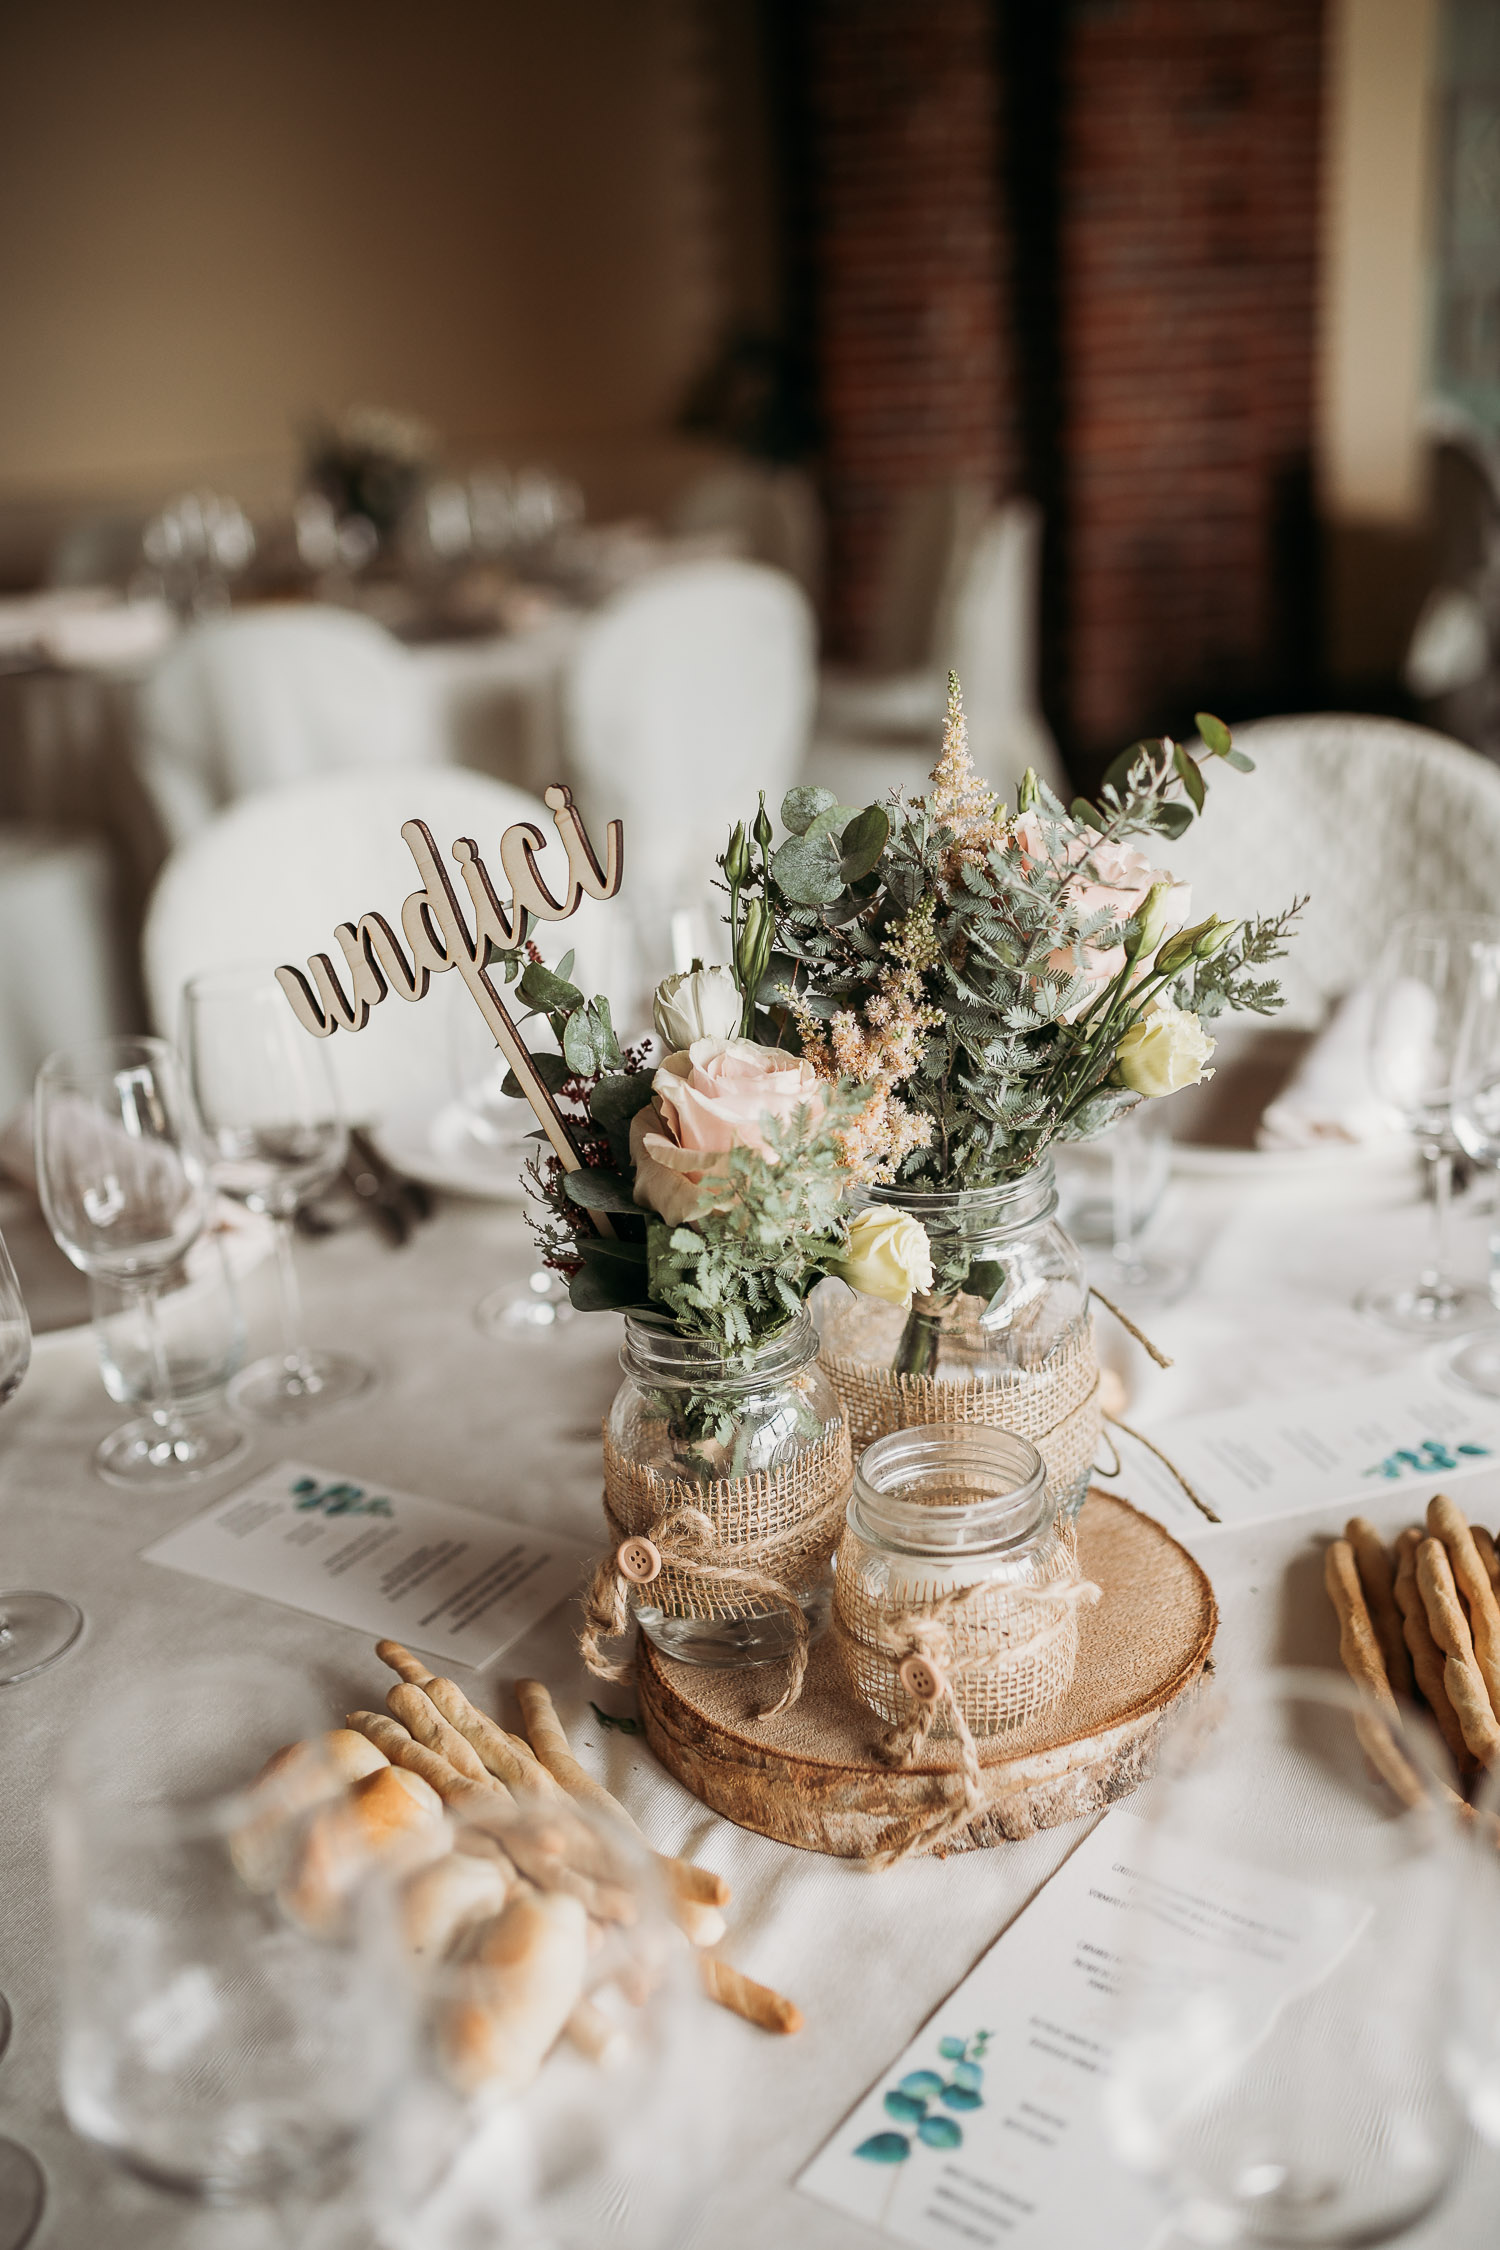 Rustic centerpiece with wooden numbers and romantic flowers at Tenuta Tamburnin